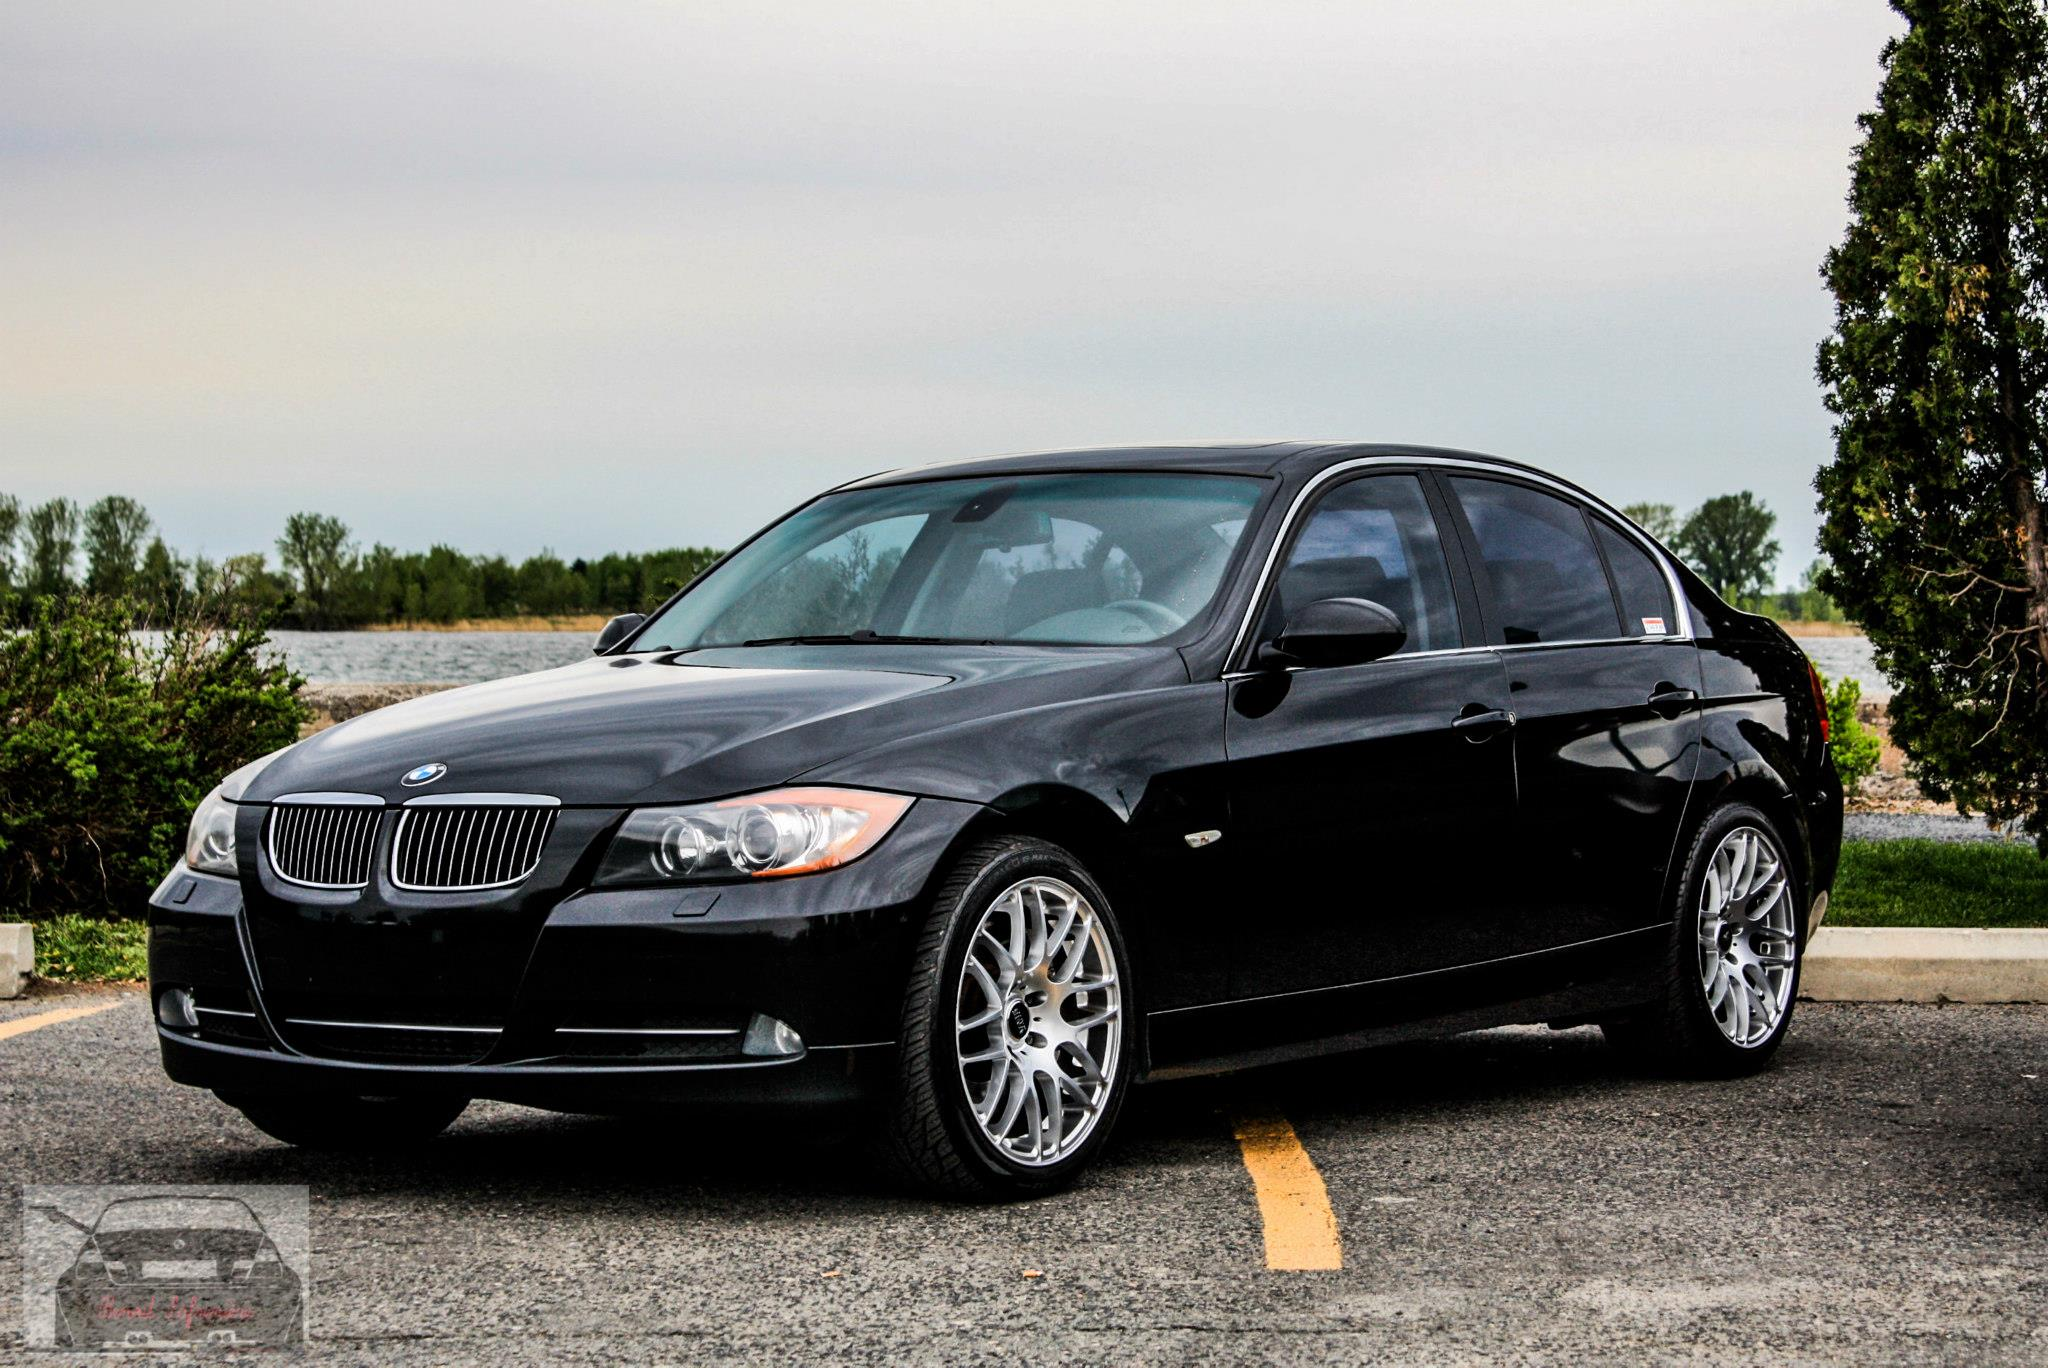 2008 BMW 335xi E90 1/4 mile trap speeds 0-60 - DragTimes.com